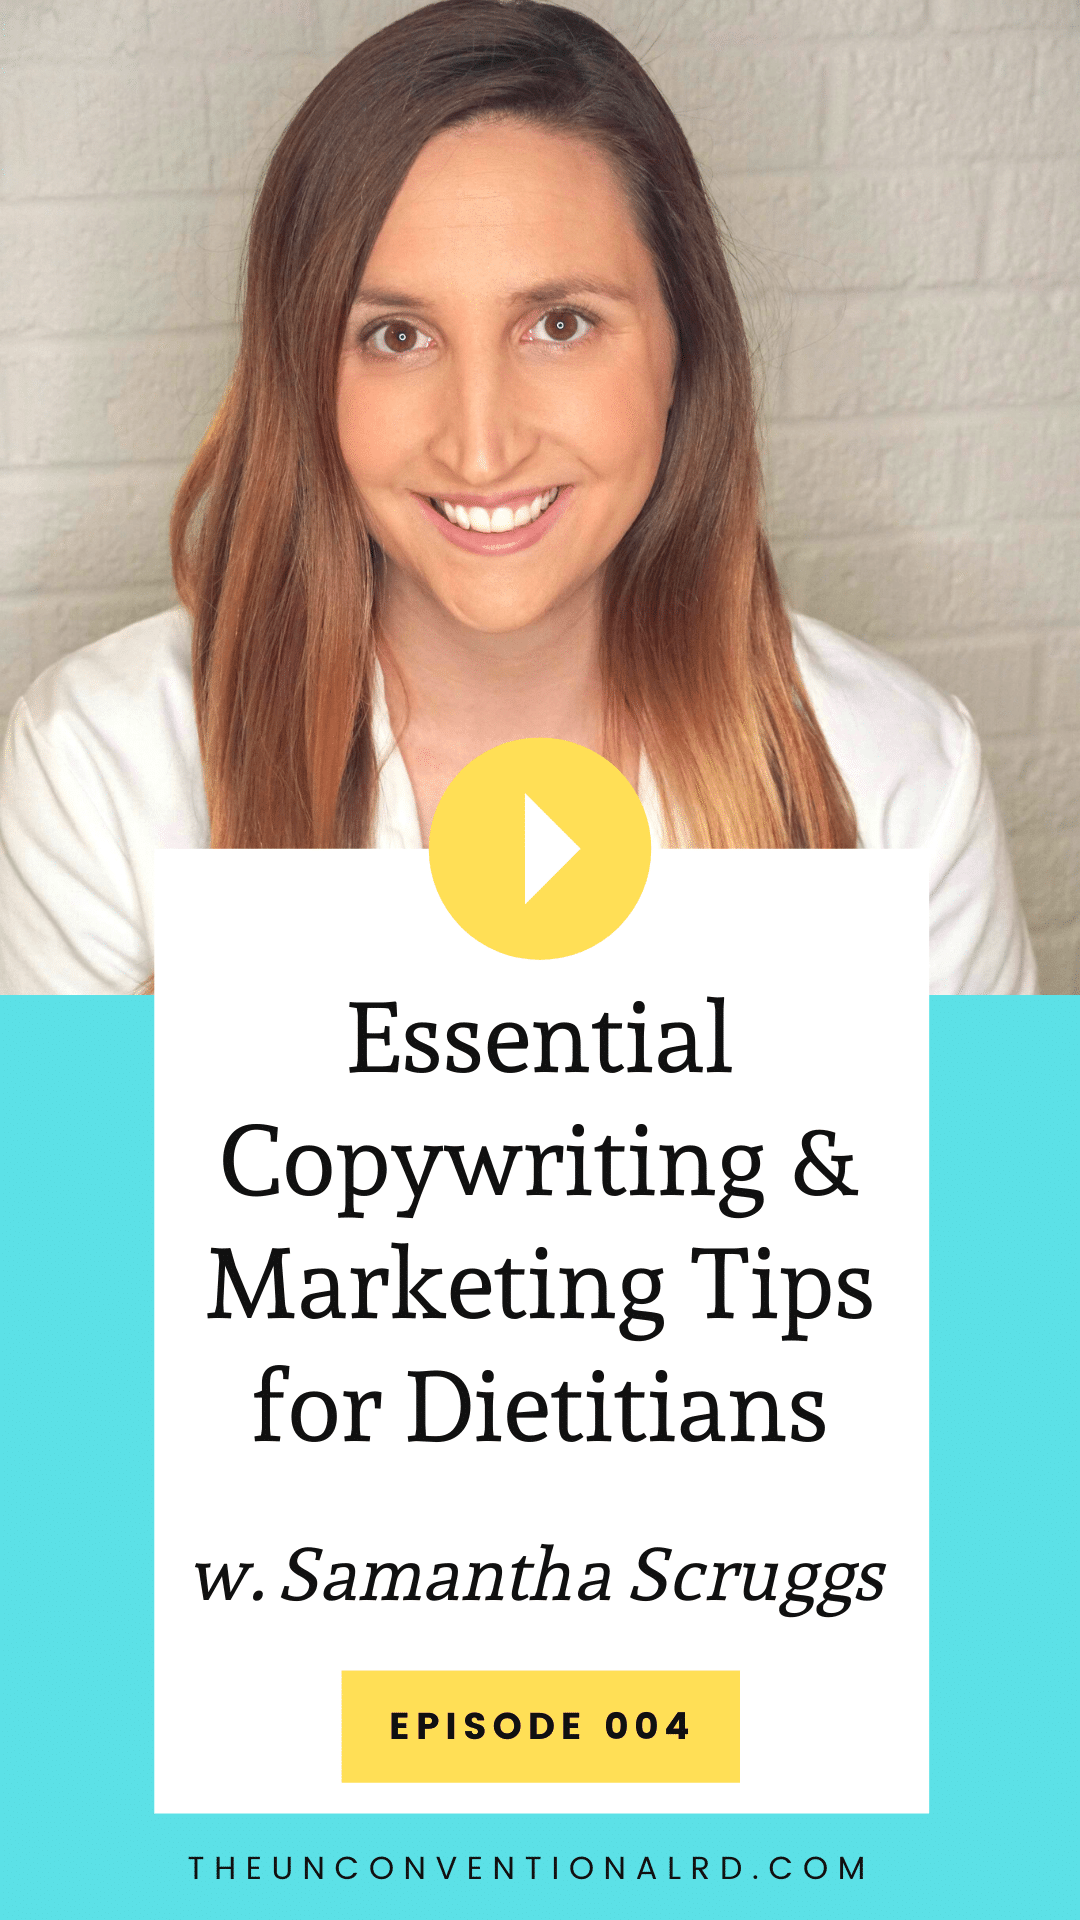 TURD004 Copywriting & Marketing Tips for Dietitians with Samantha Scruggs